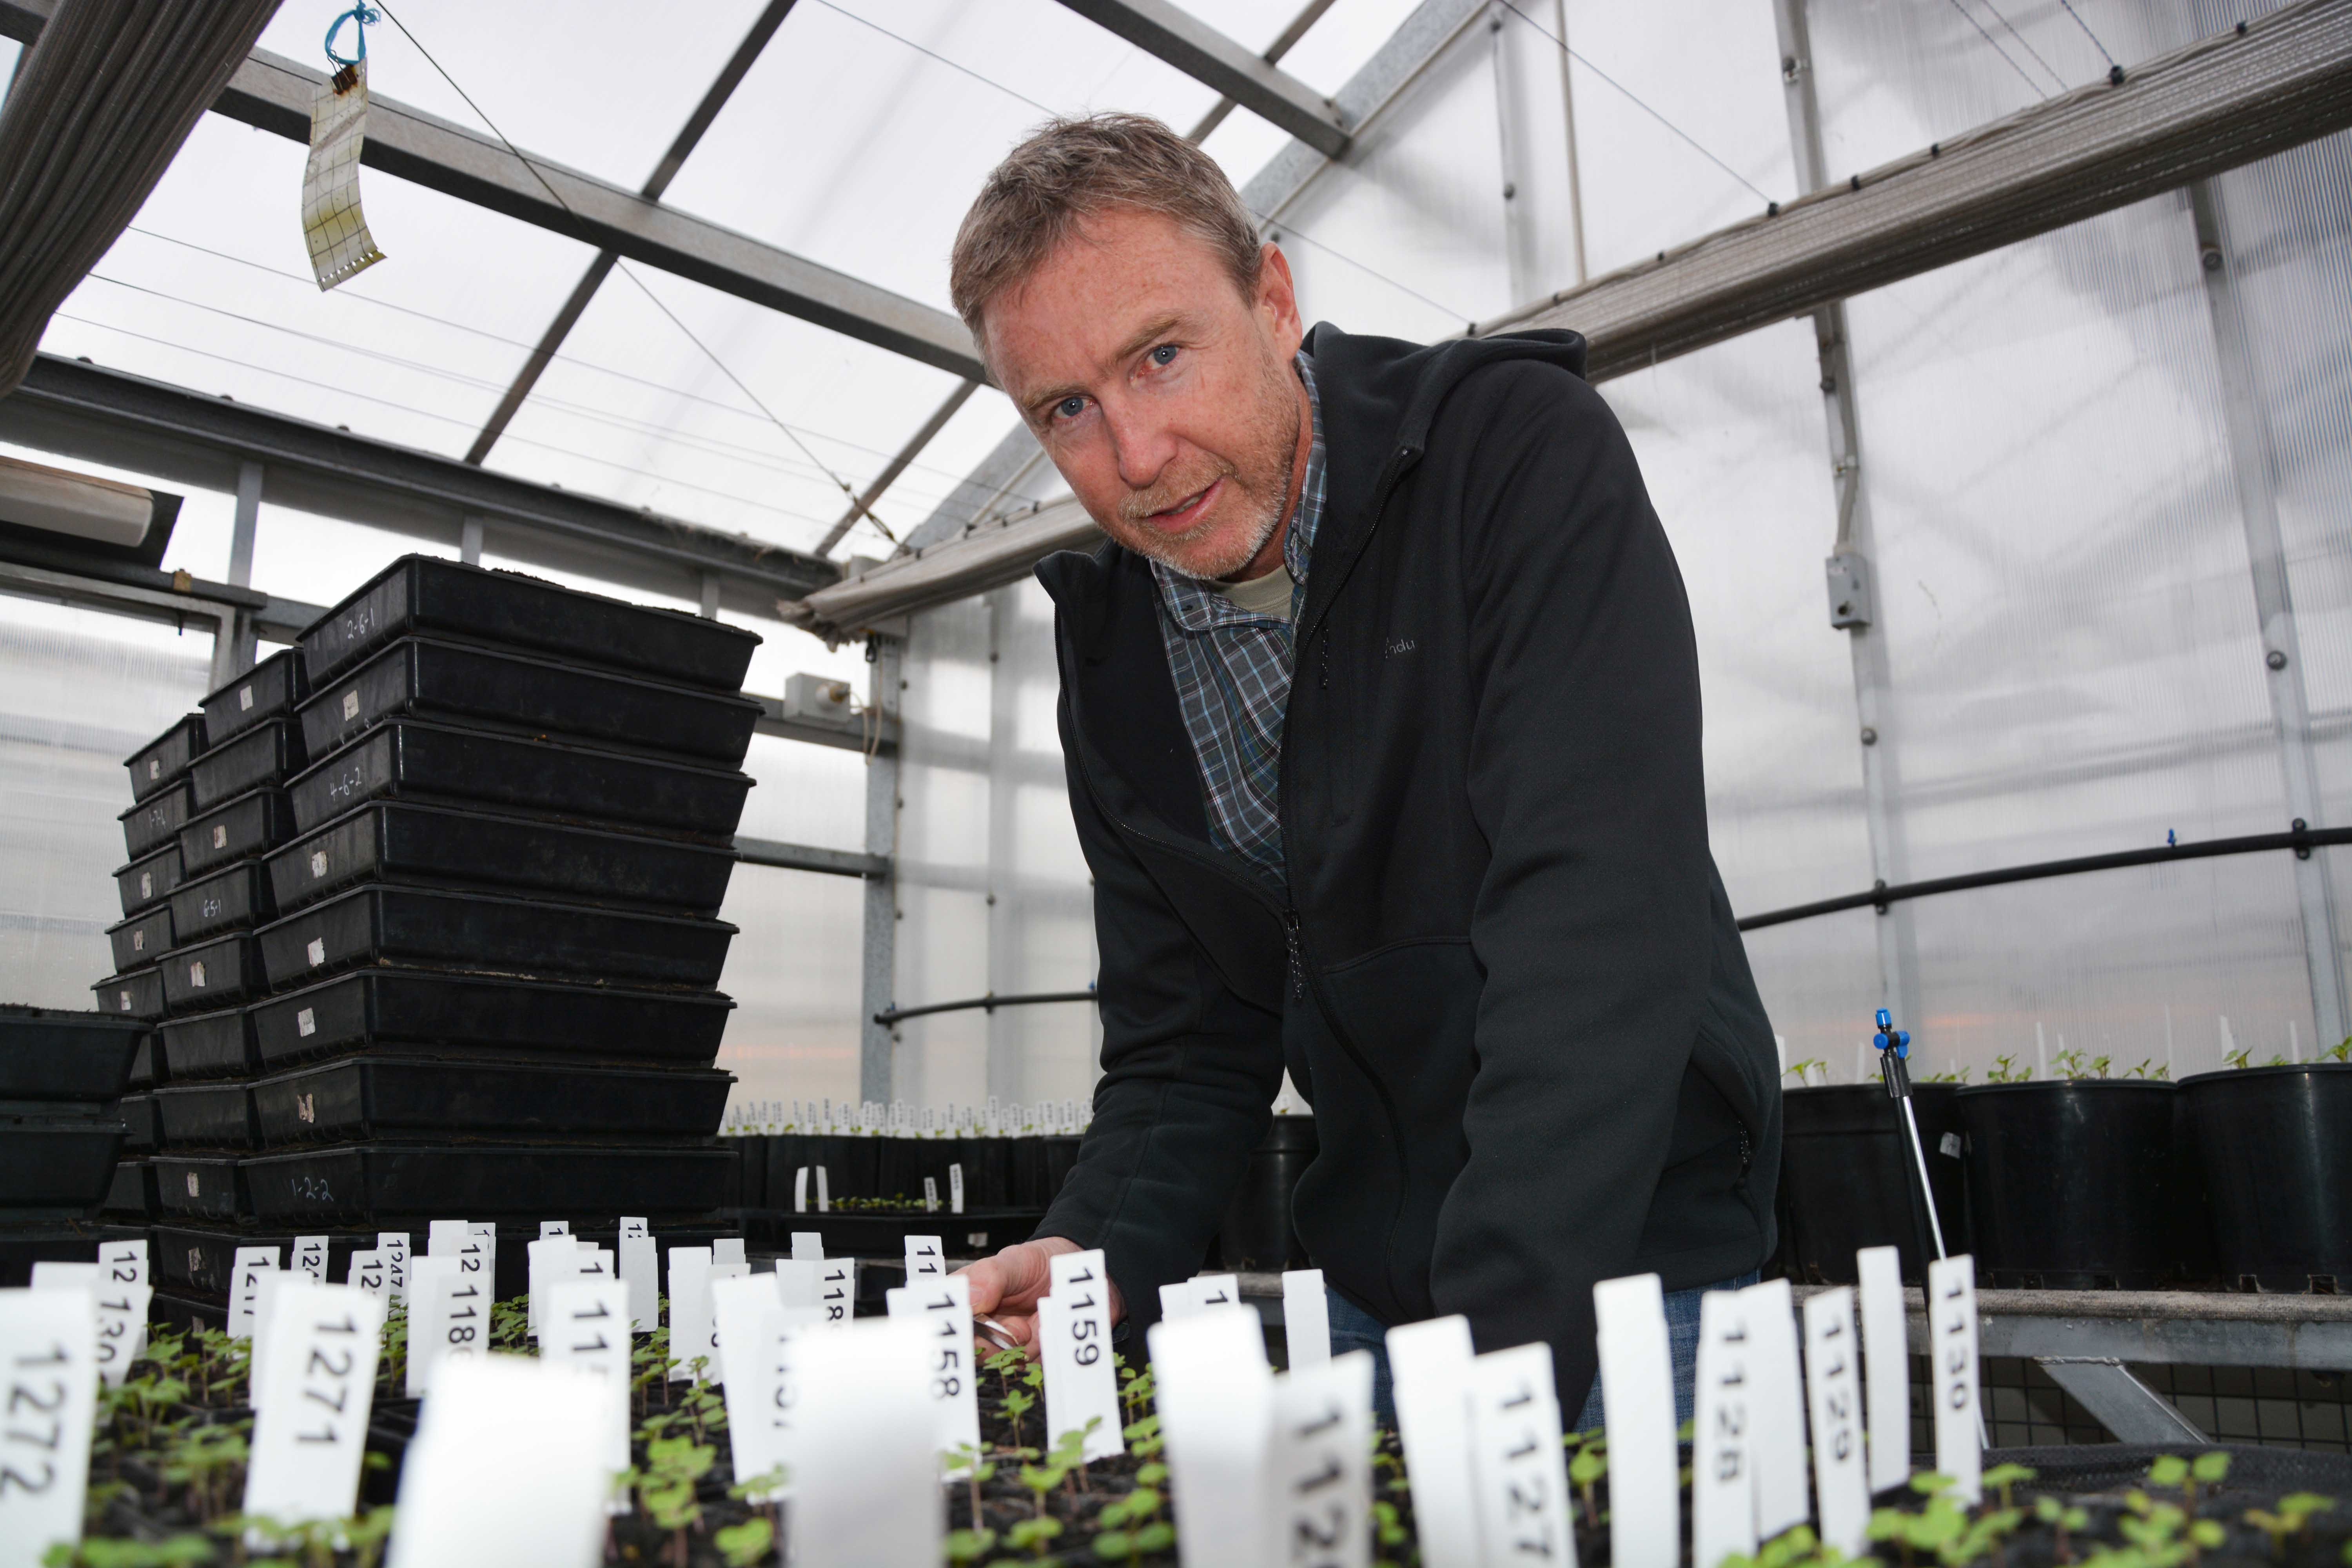 Steve Marcroft in a glasshouse